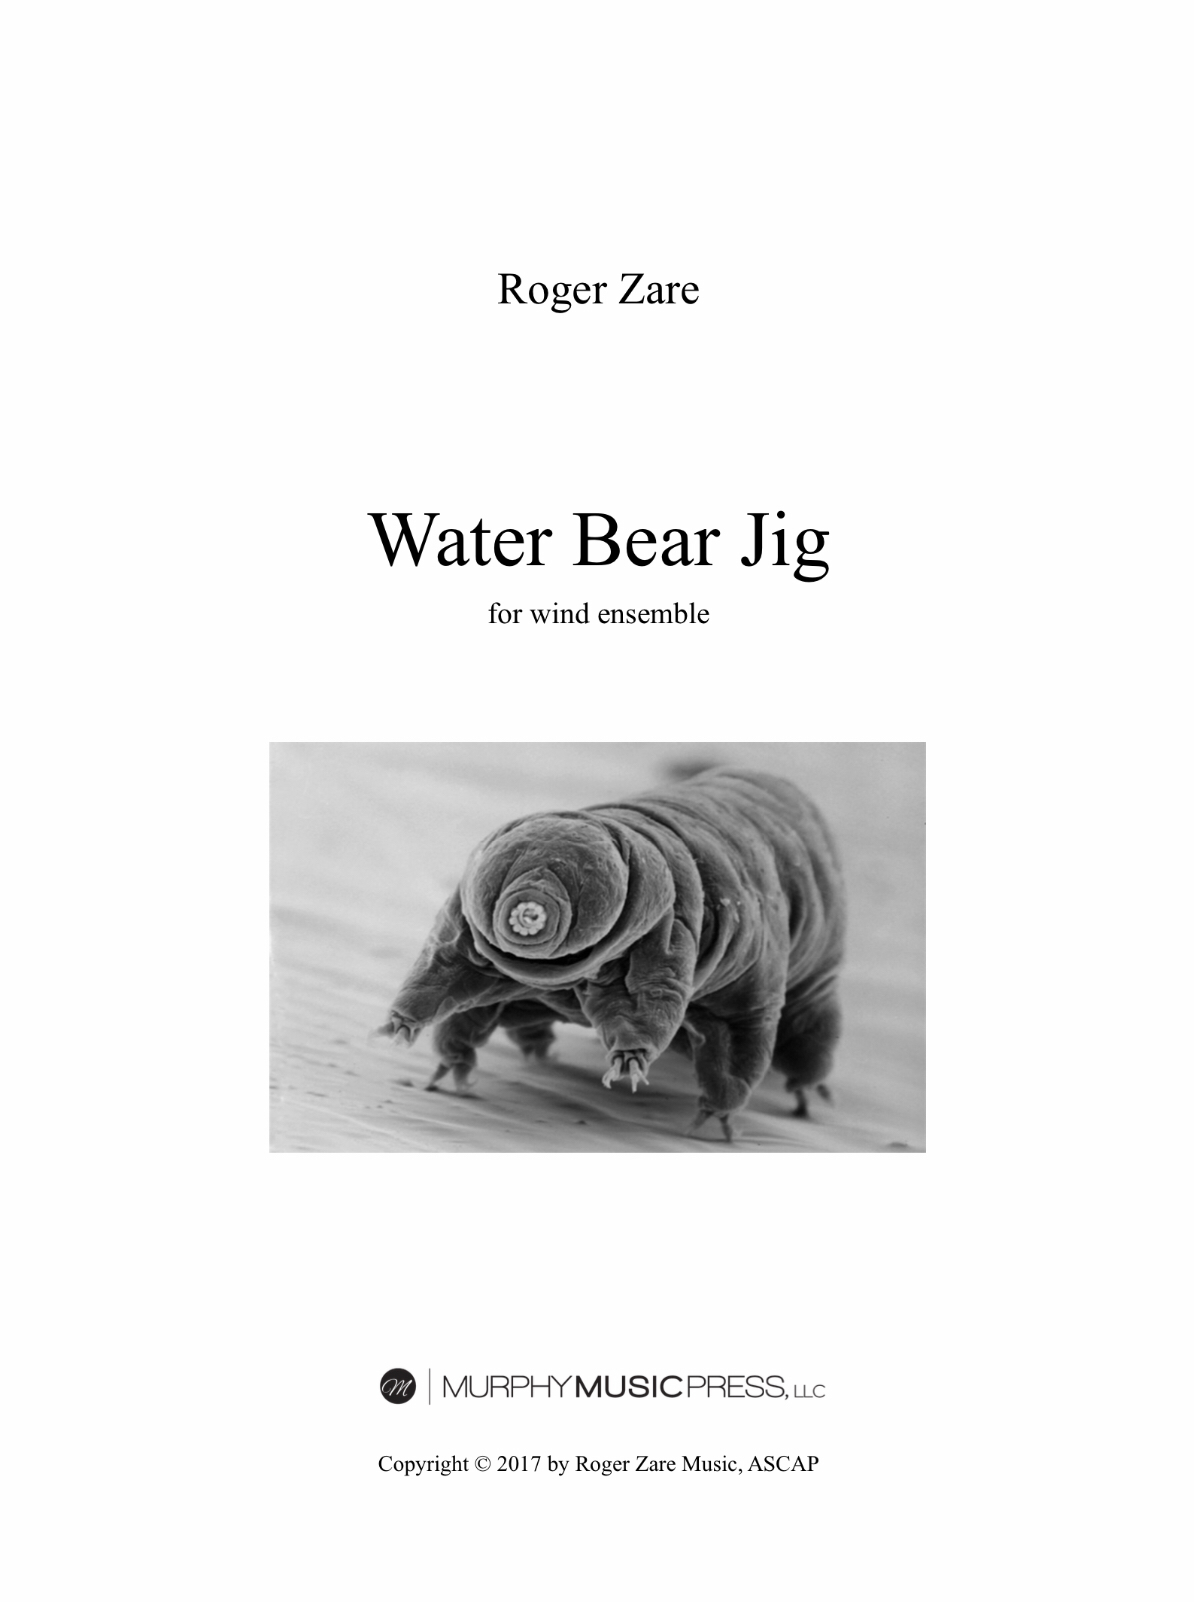 Water Bear Jig by Roger Zare